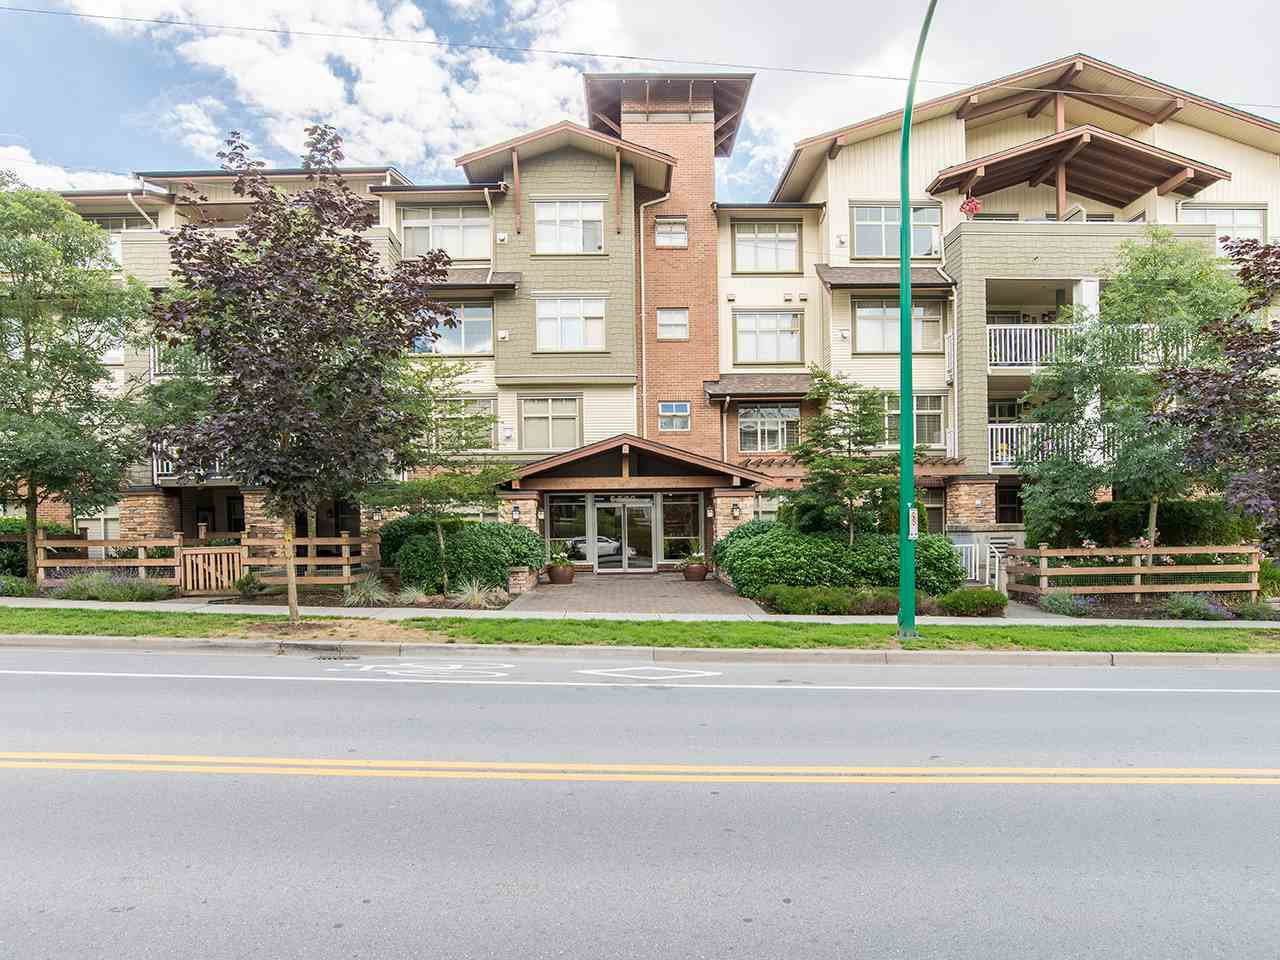 """Main Photo: 413 6500 194 Street in Surrey: Clayton Condo for sale in """"Sunset Grove"""" (Cloverdale)  : MLS®# R2219082"""